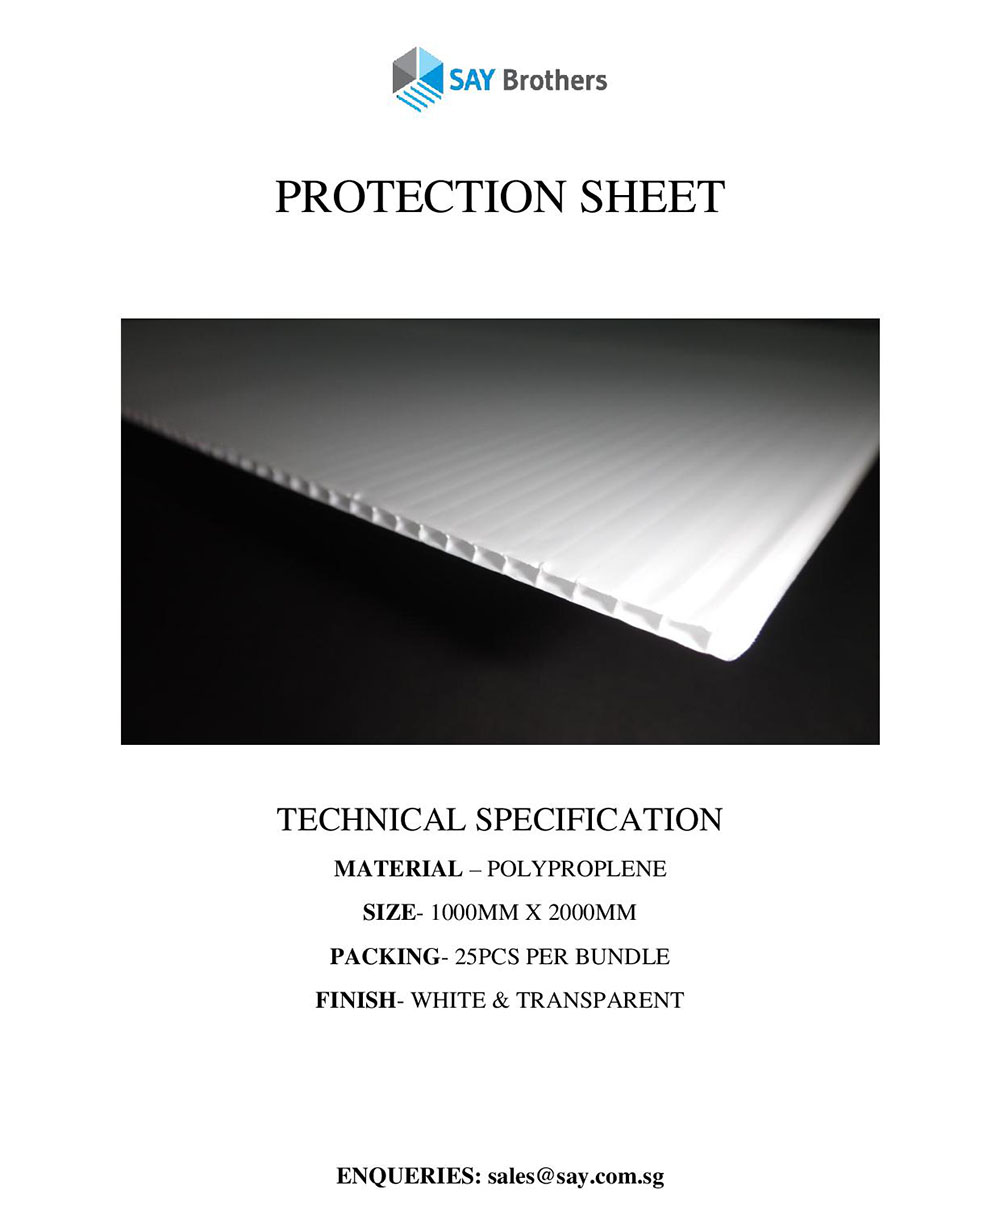 Protection sheet pic